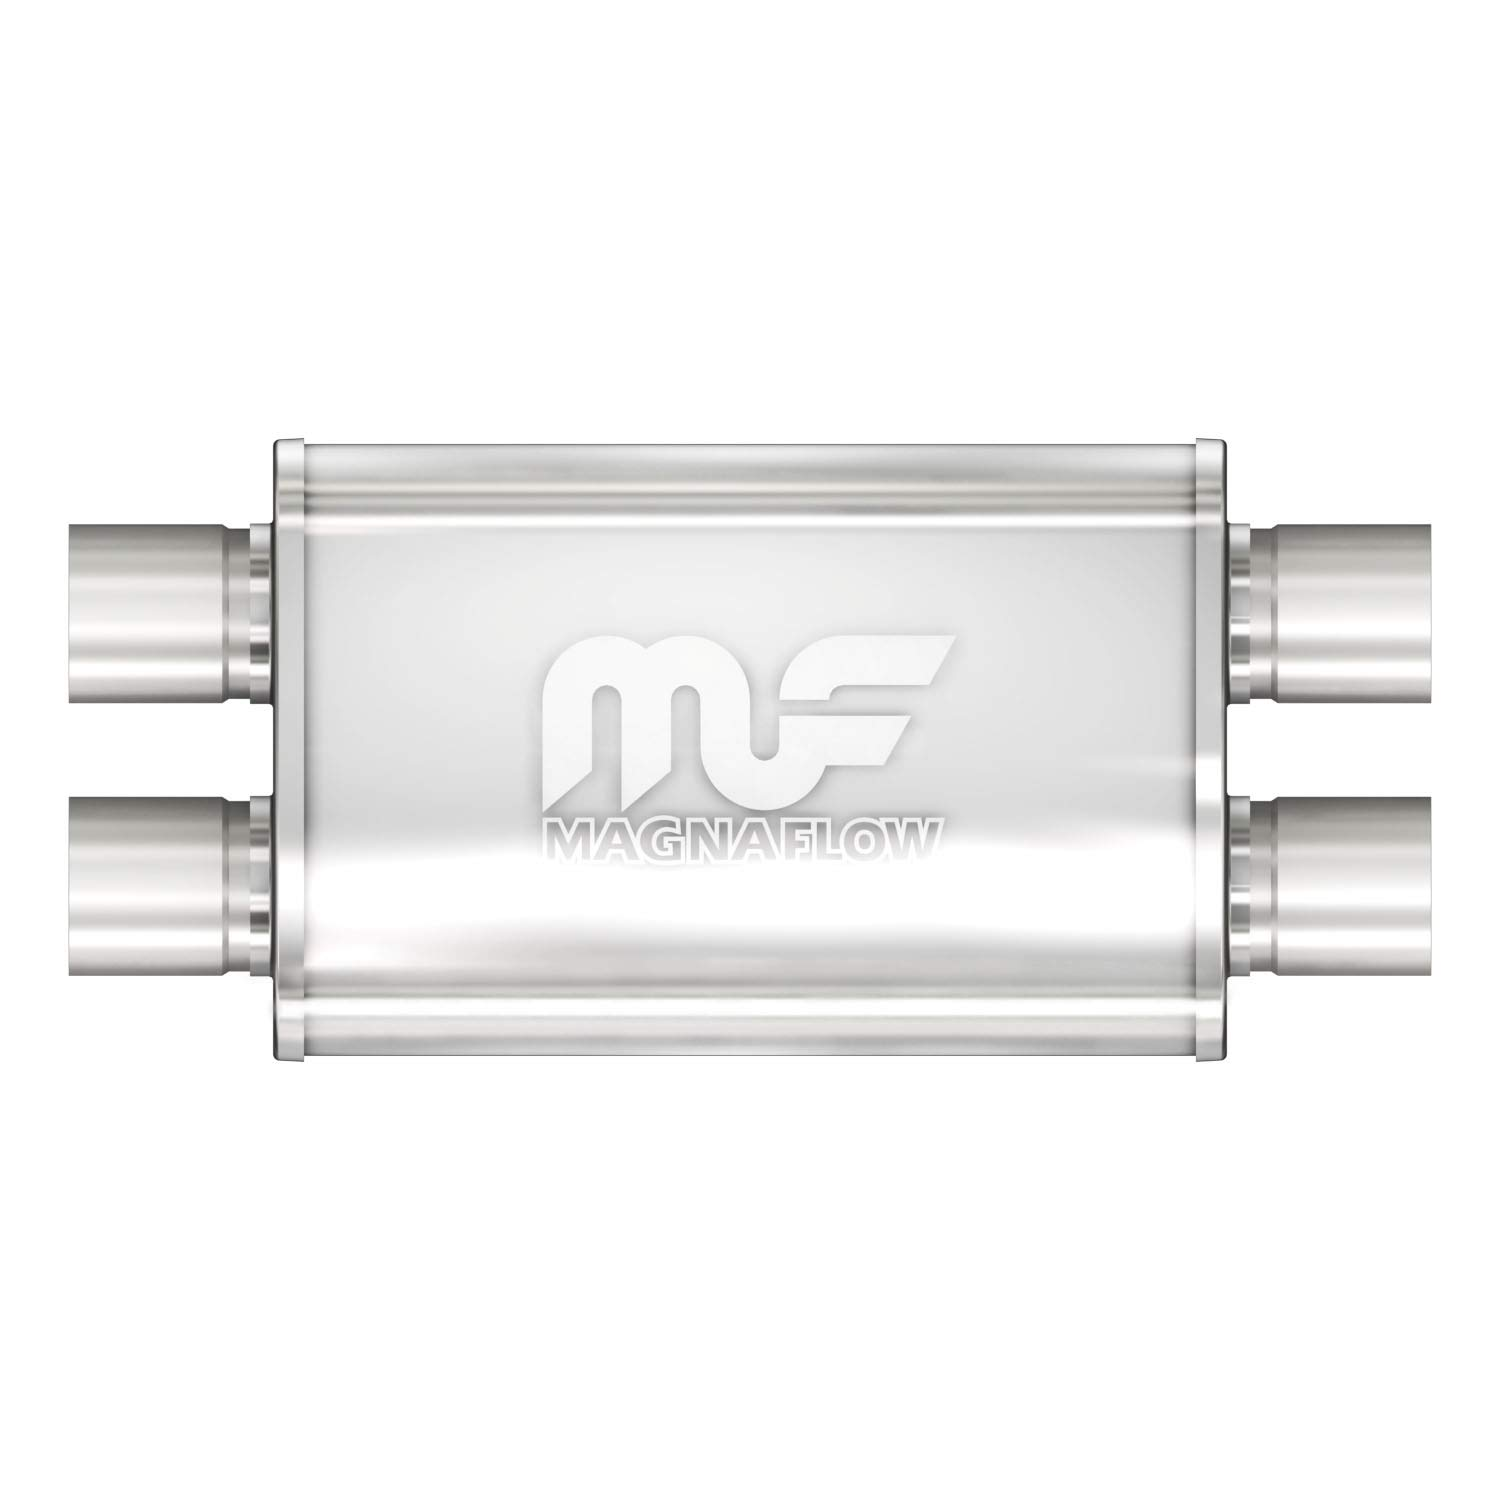 MagnaFlow 11386 Exhaust Muffler MagnaFlow Exhaust Products